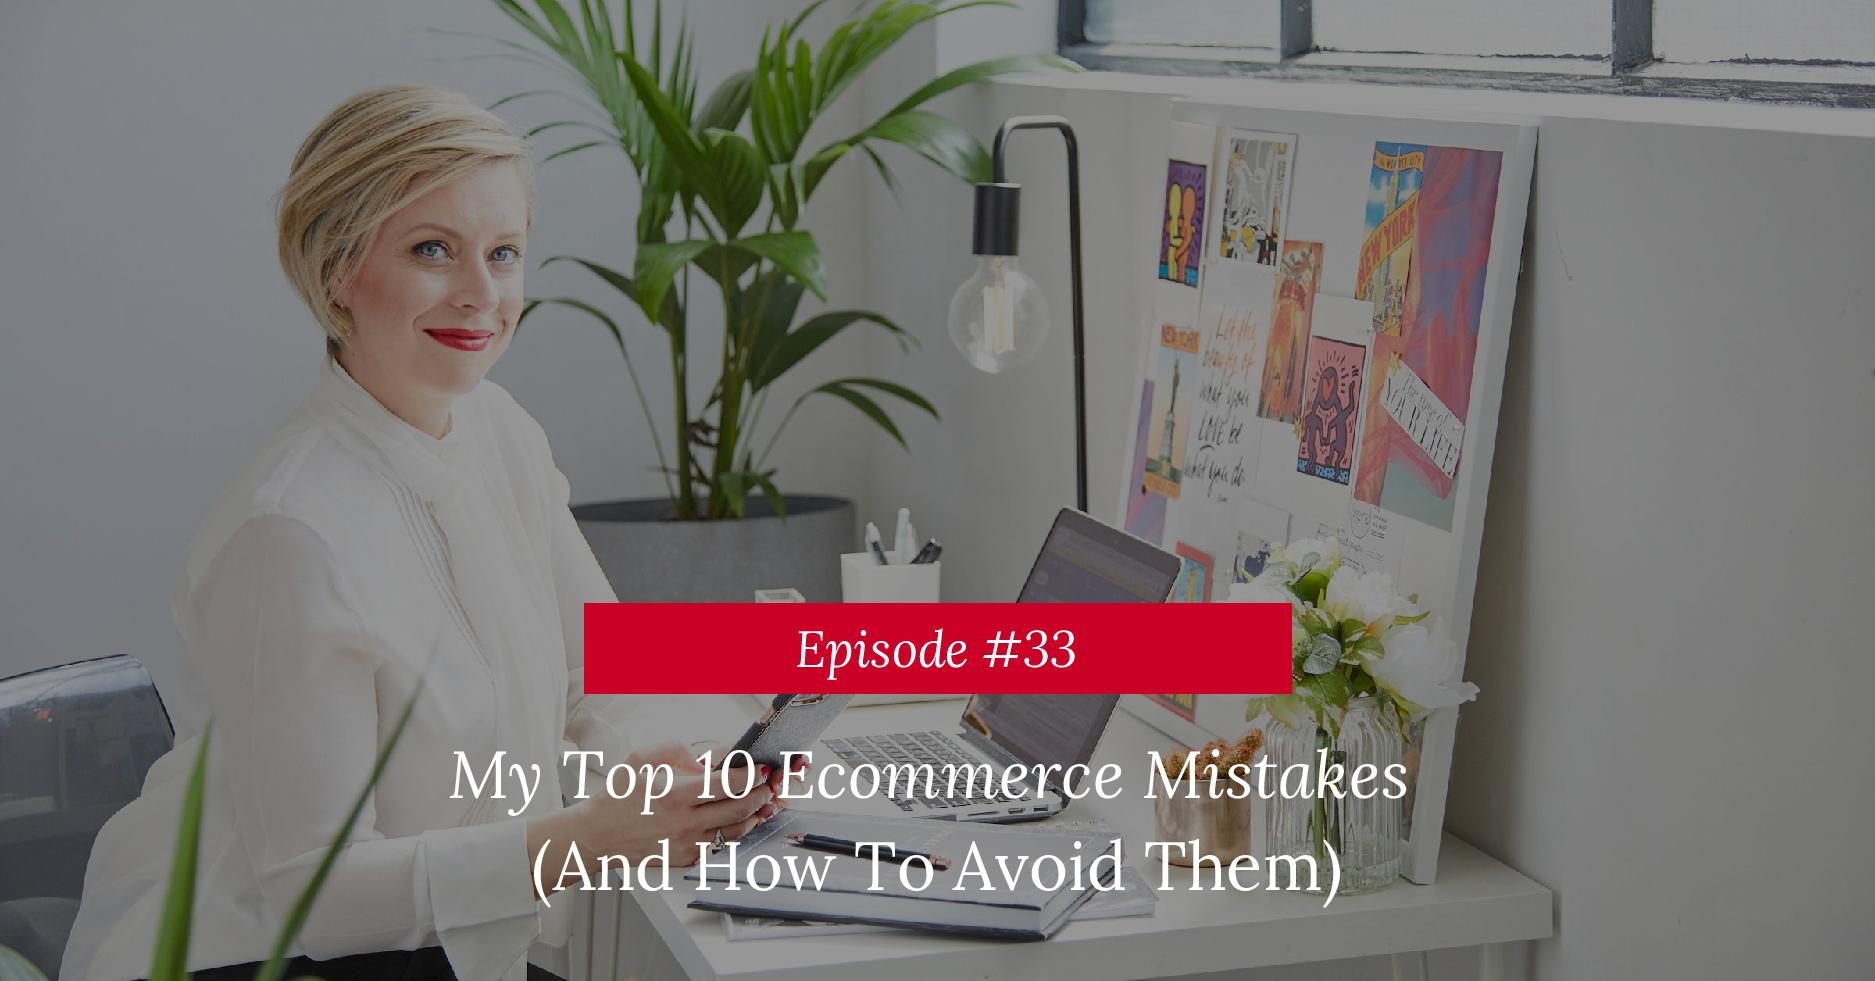 My Top 10 eCommerce Mistakes (& How To Avoid Them)